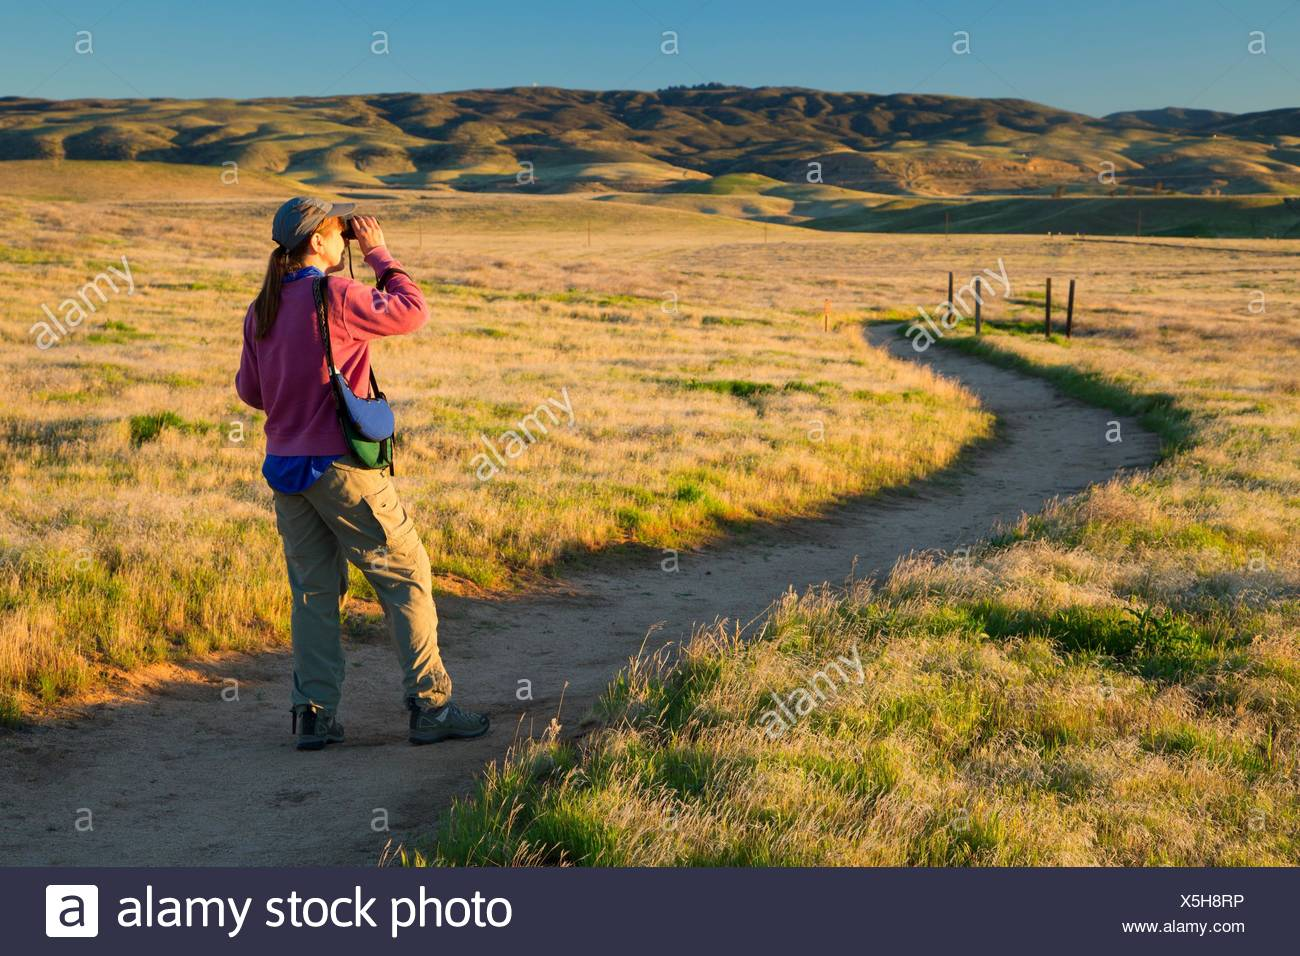 Birder on paved trail, Antelope Valley California Poppy State Reserve, California. - Stock Image